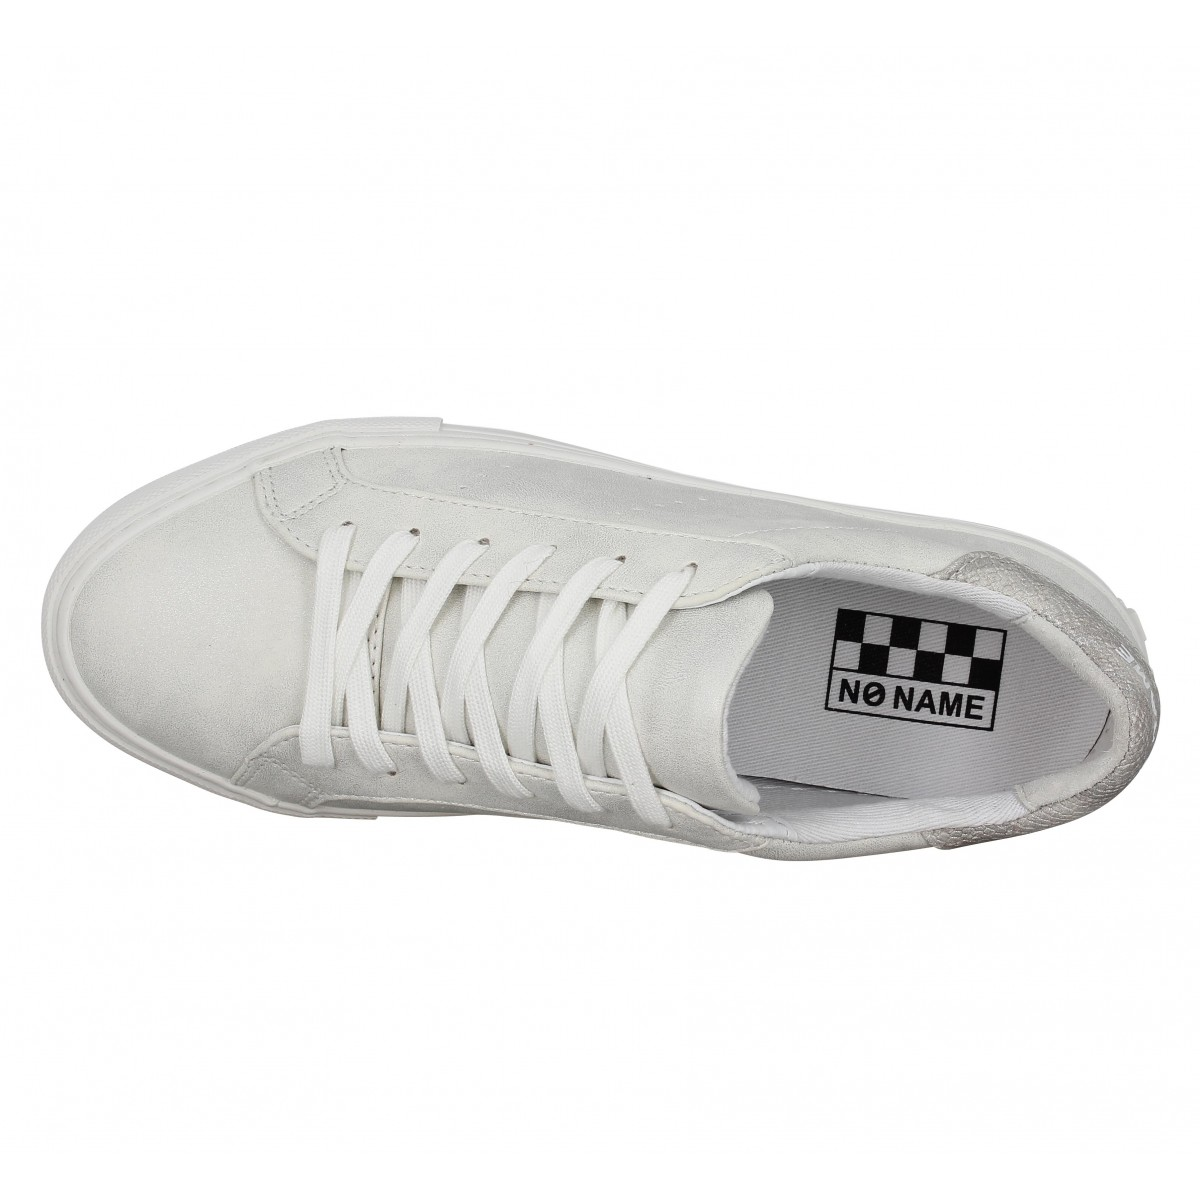 chaussures no name arcade sneaker glow femme white femme fanny chaussures. Black Bedroom Furniture Sets. Home Design Ideas